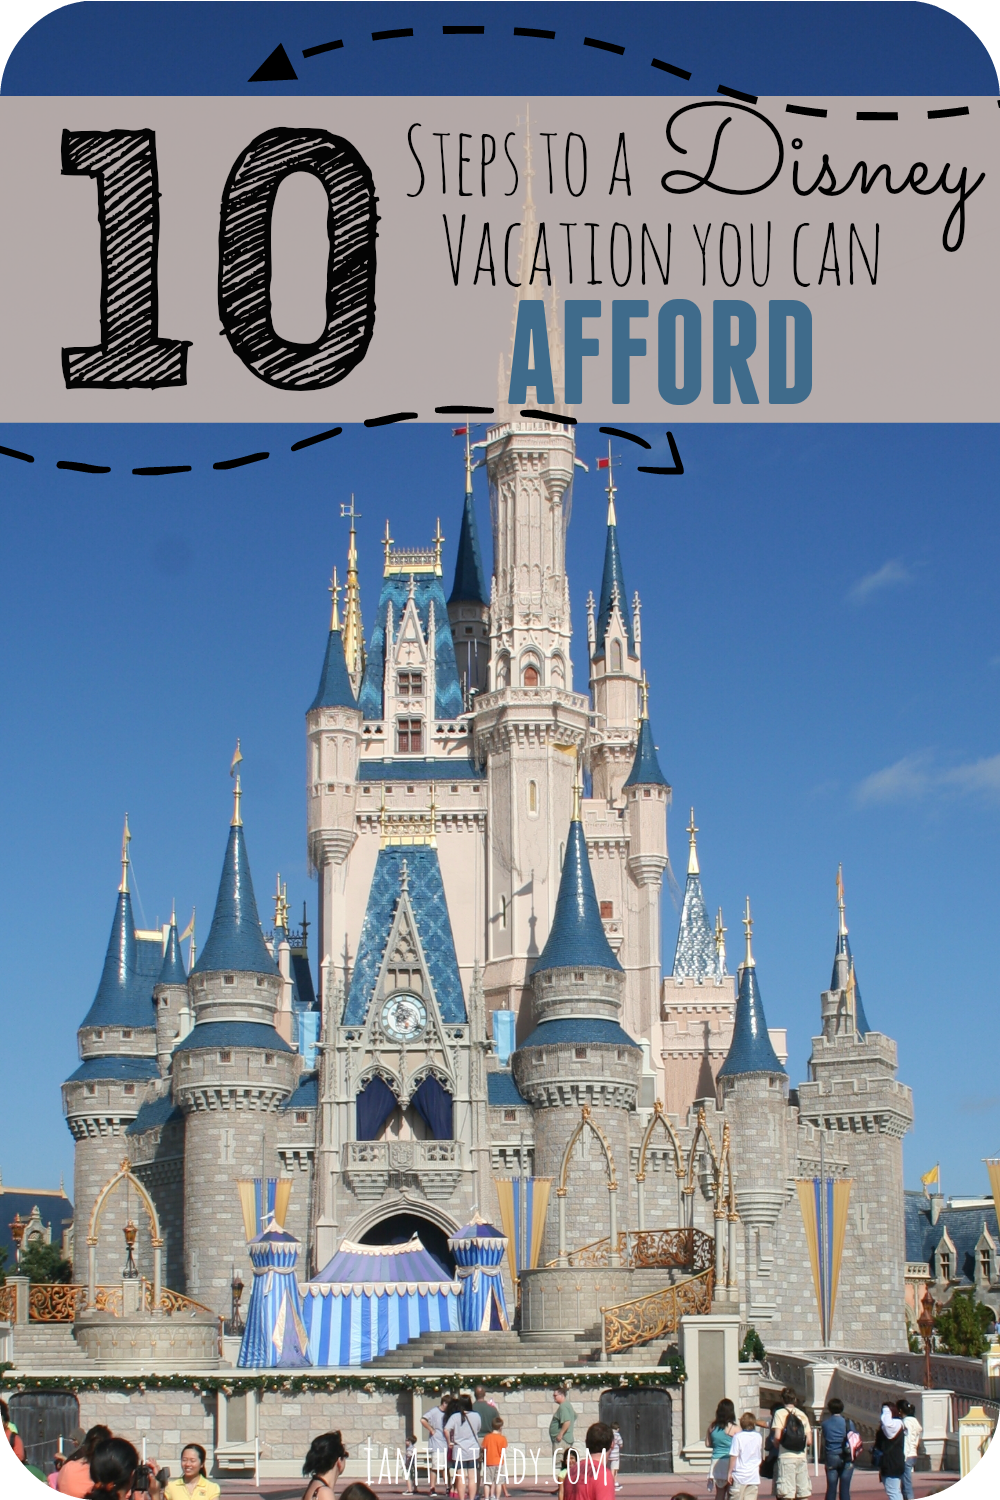 Are you wondering how to plan a Disney vacation that you can afford? It really doesn't have to be super expensive, so here are my secret 10 steps to a Disney vacation that you can afford!